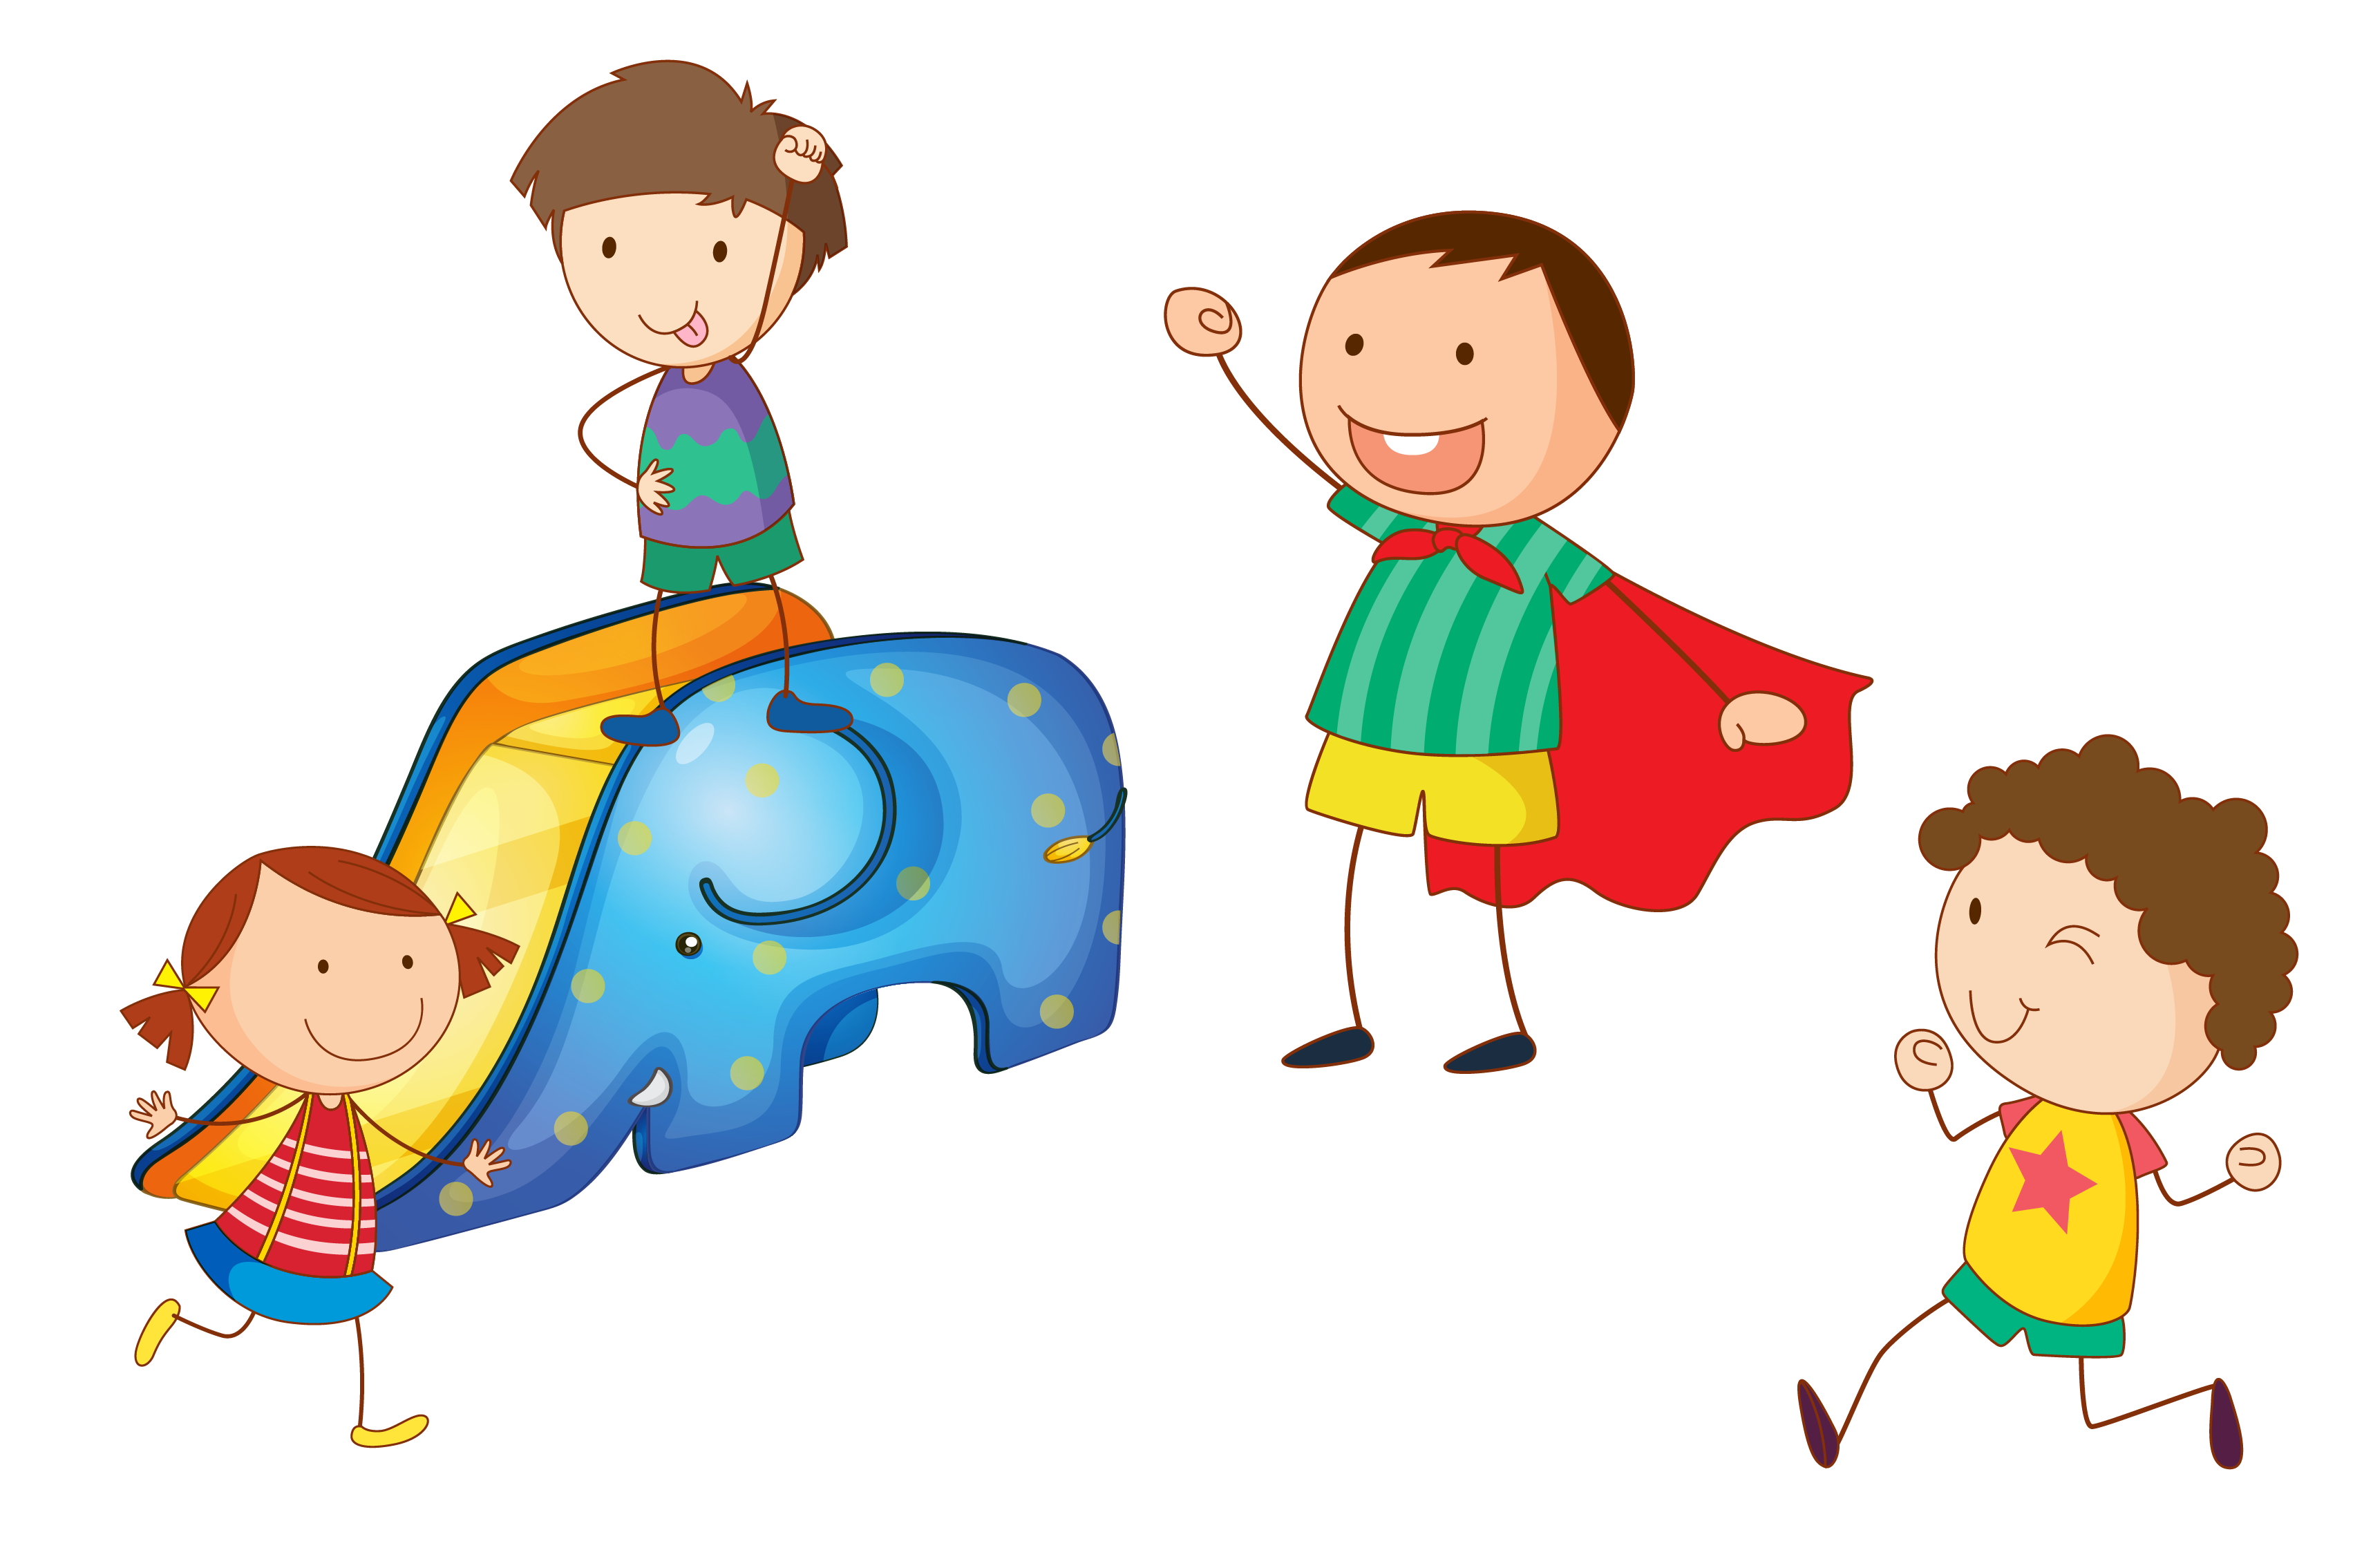 download Kids playing on playground clipart. Child boy children play